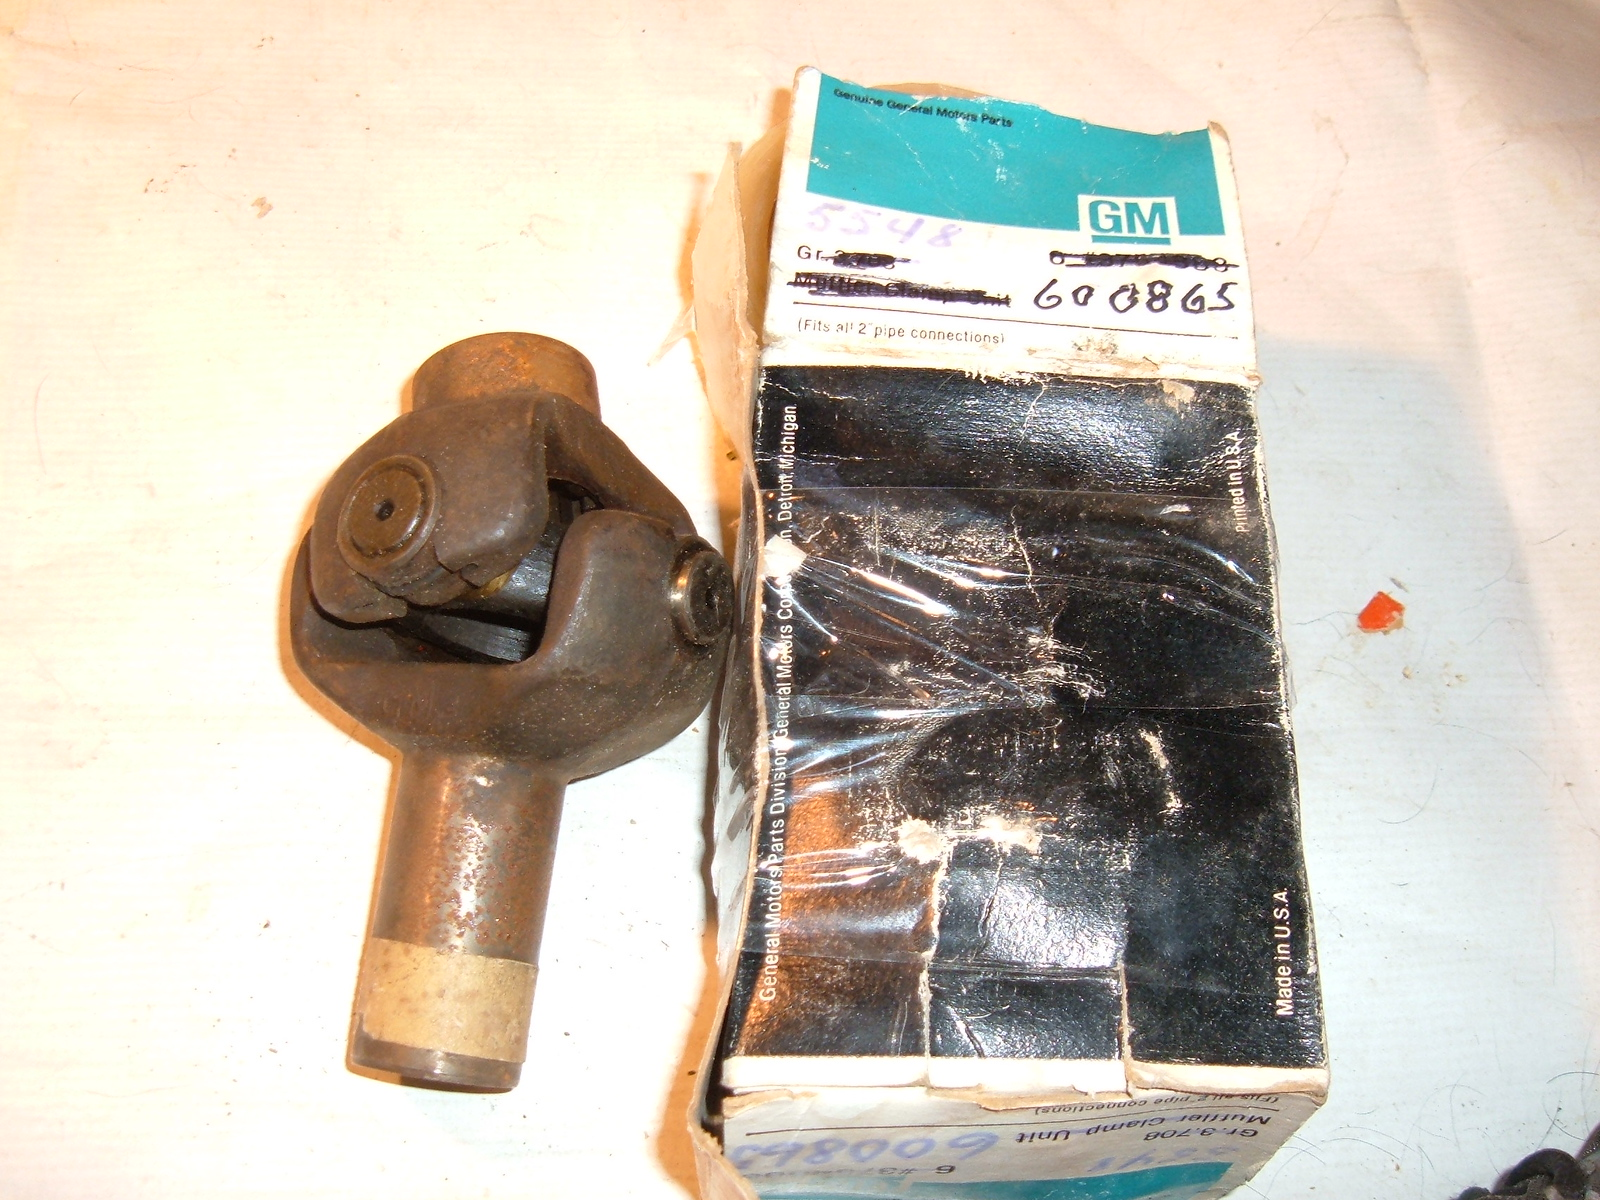 1933 34 35 36 37 38 39 chevrolet truck universal joint nos gm 600865 (z 600685)